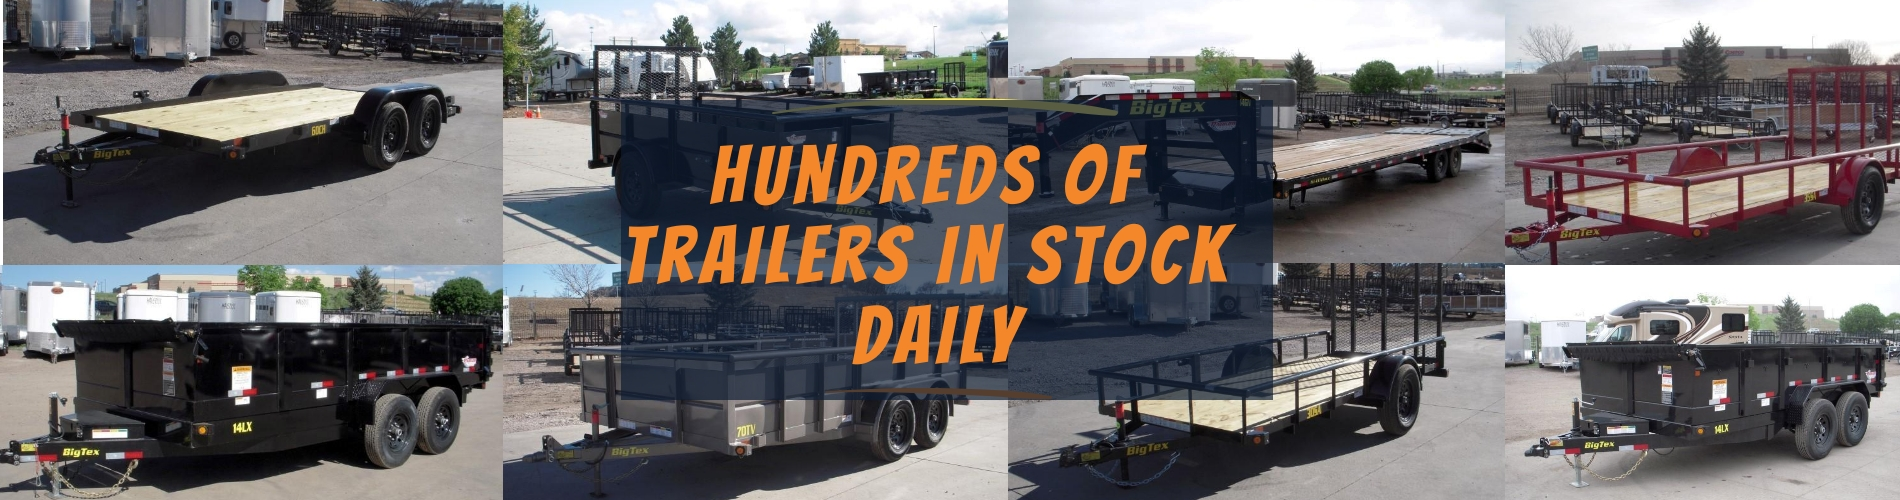 Home Colorado New And Used Trailer Sales Parker Trailers Homesteader Wiring Diagram We Will Match Or Beat Any Competitors Price On Same Make Model In Stock The State Of